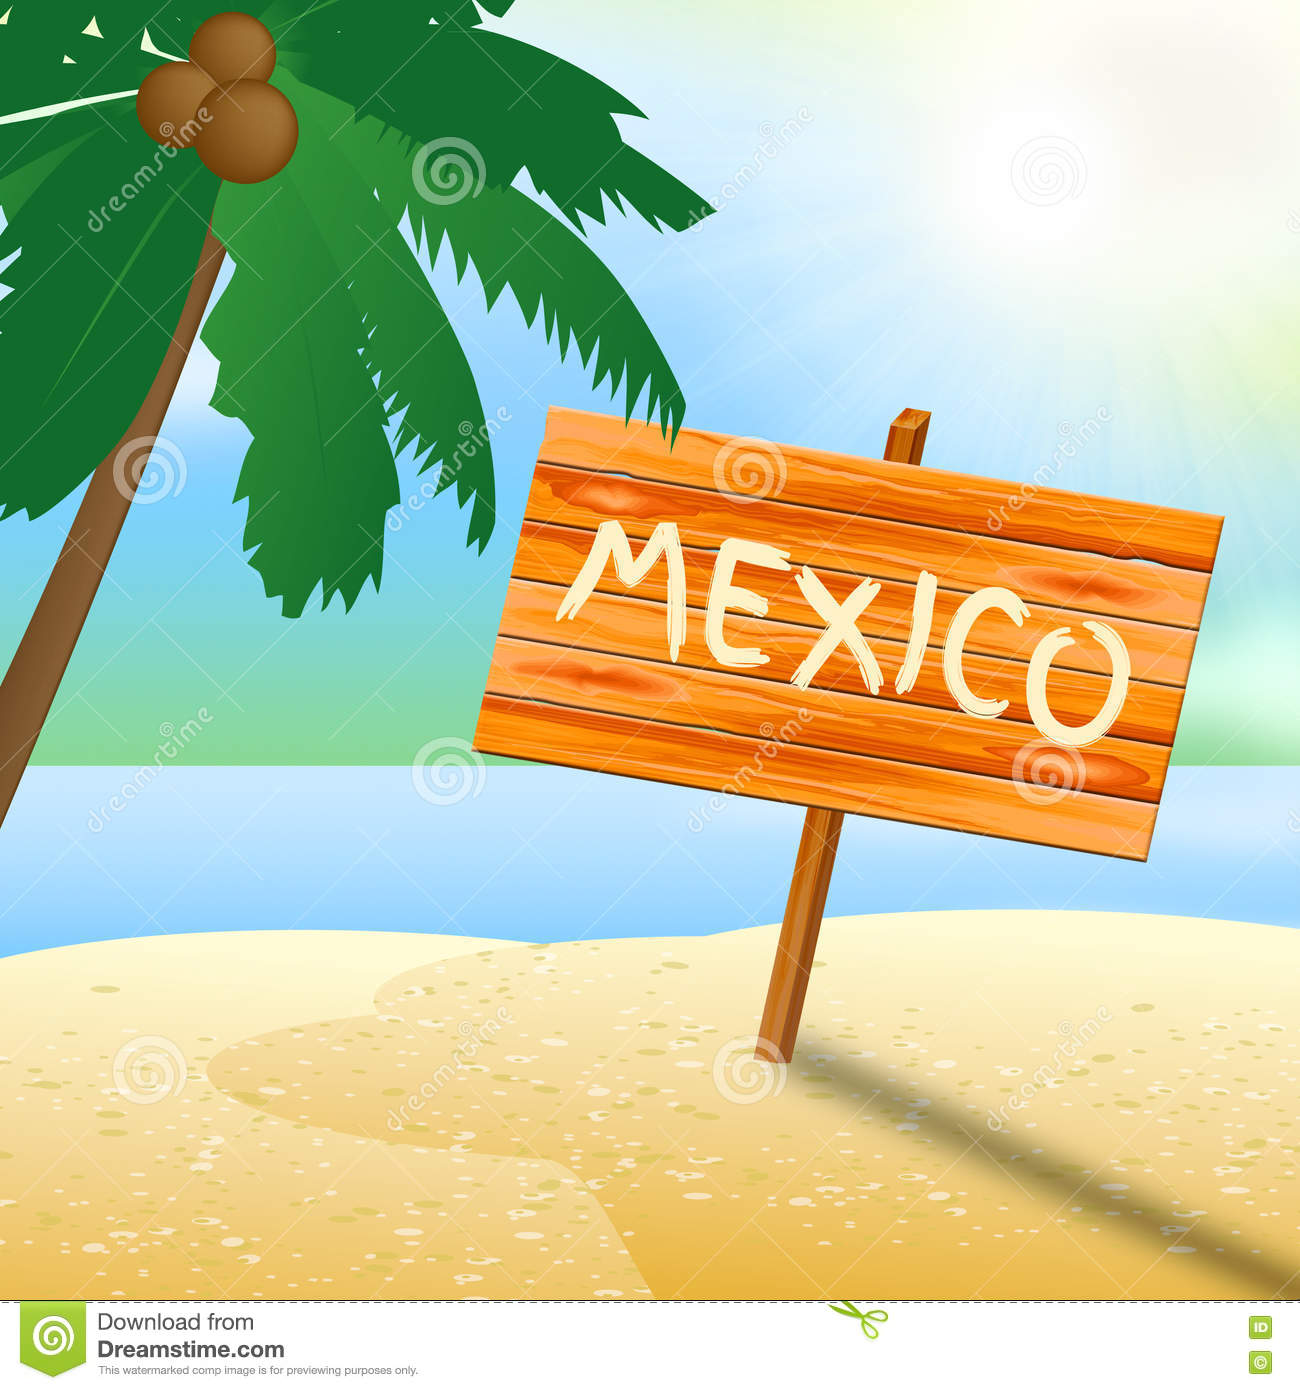 Mexico Holiday Indicates Go On Leave And Advertisement Stock Illustration Illustration Of Tropical Summer 77638834